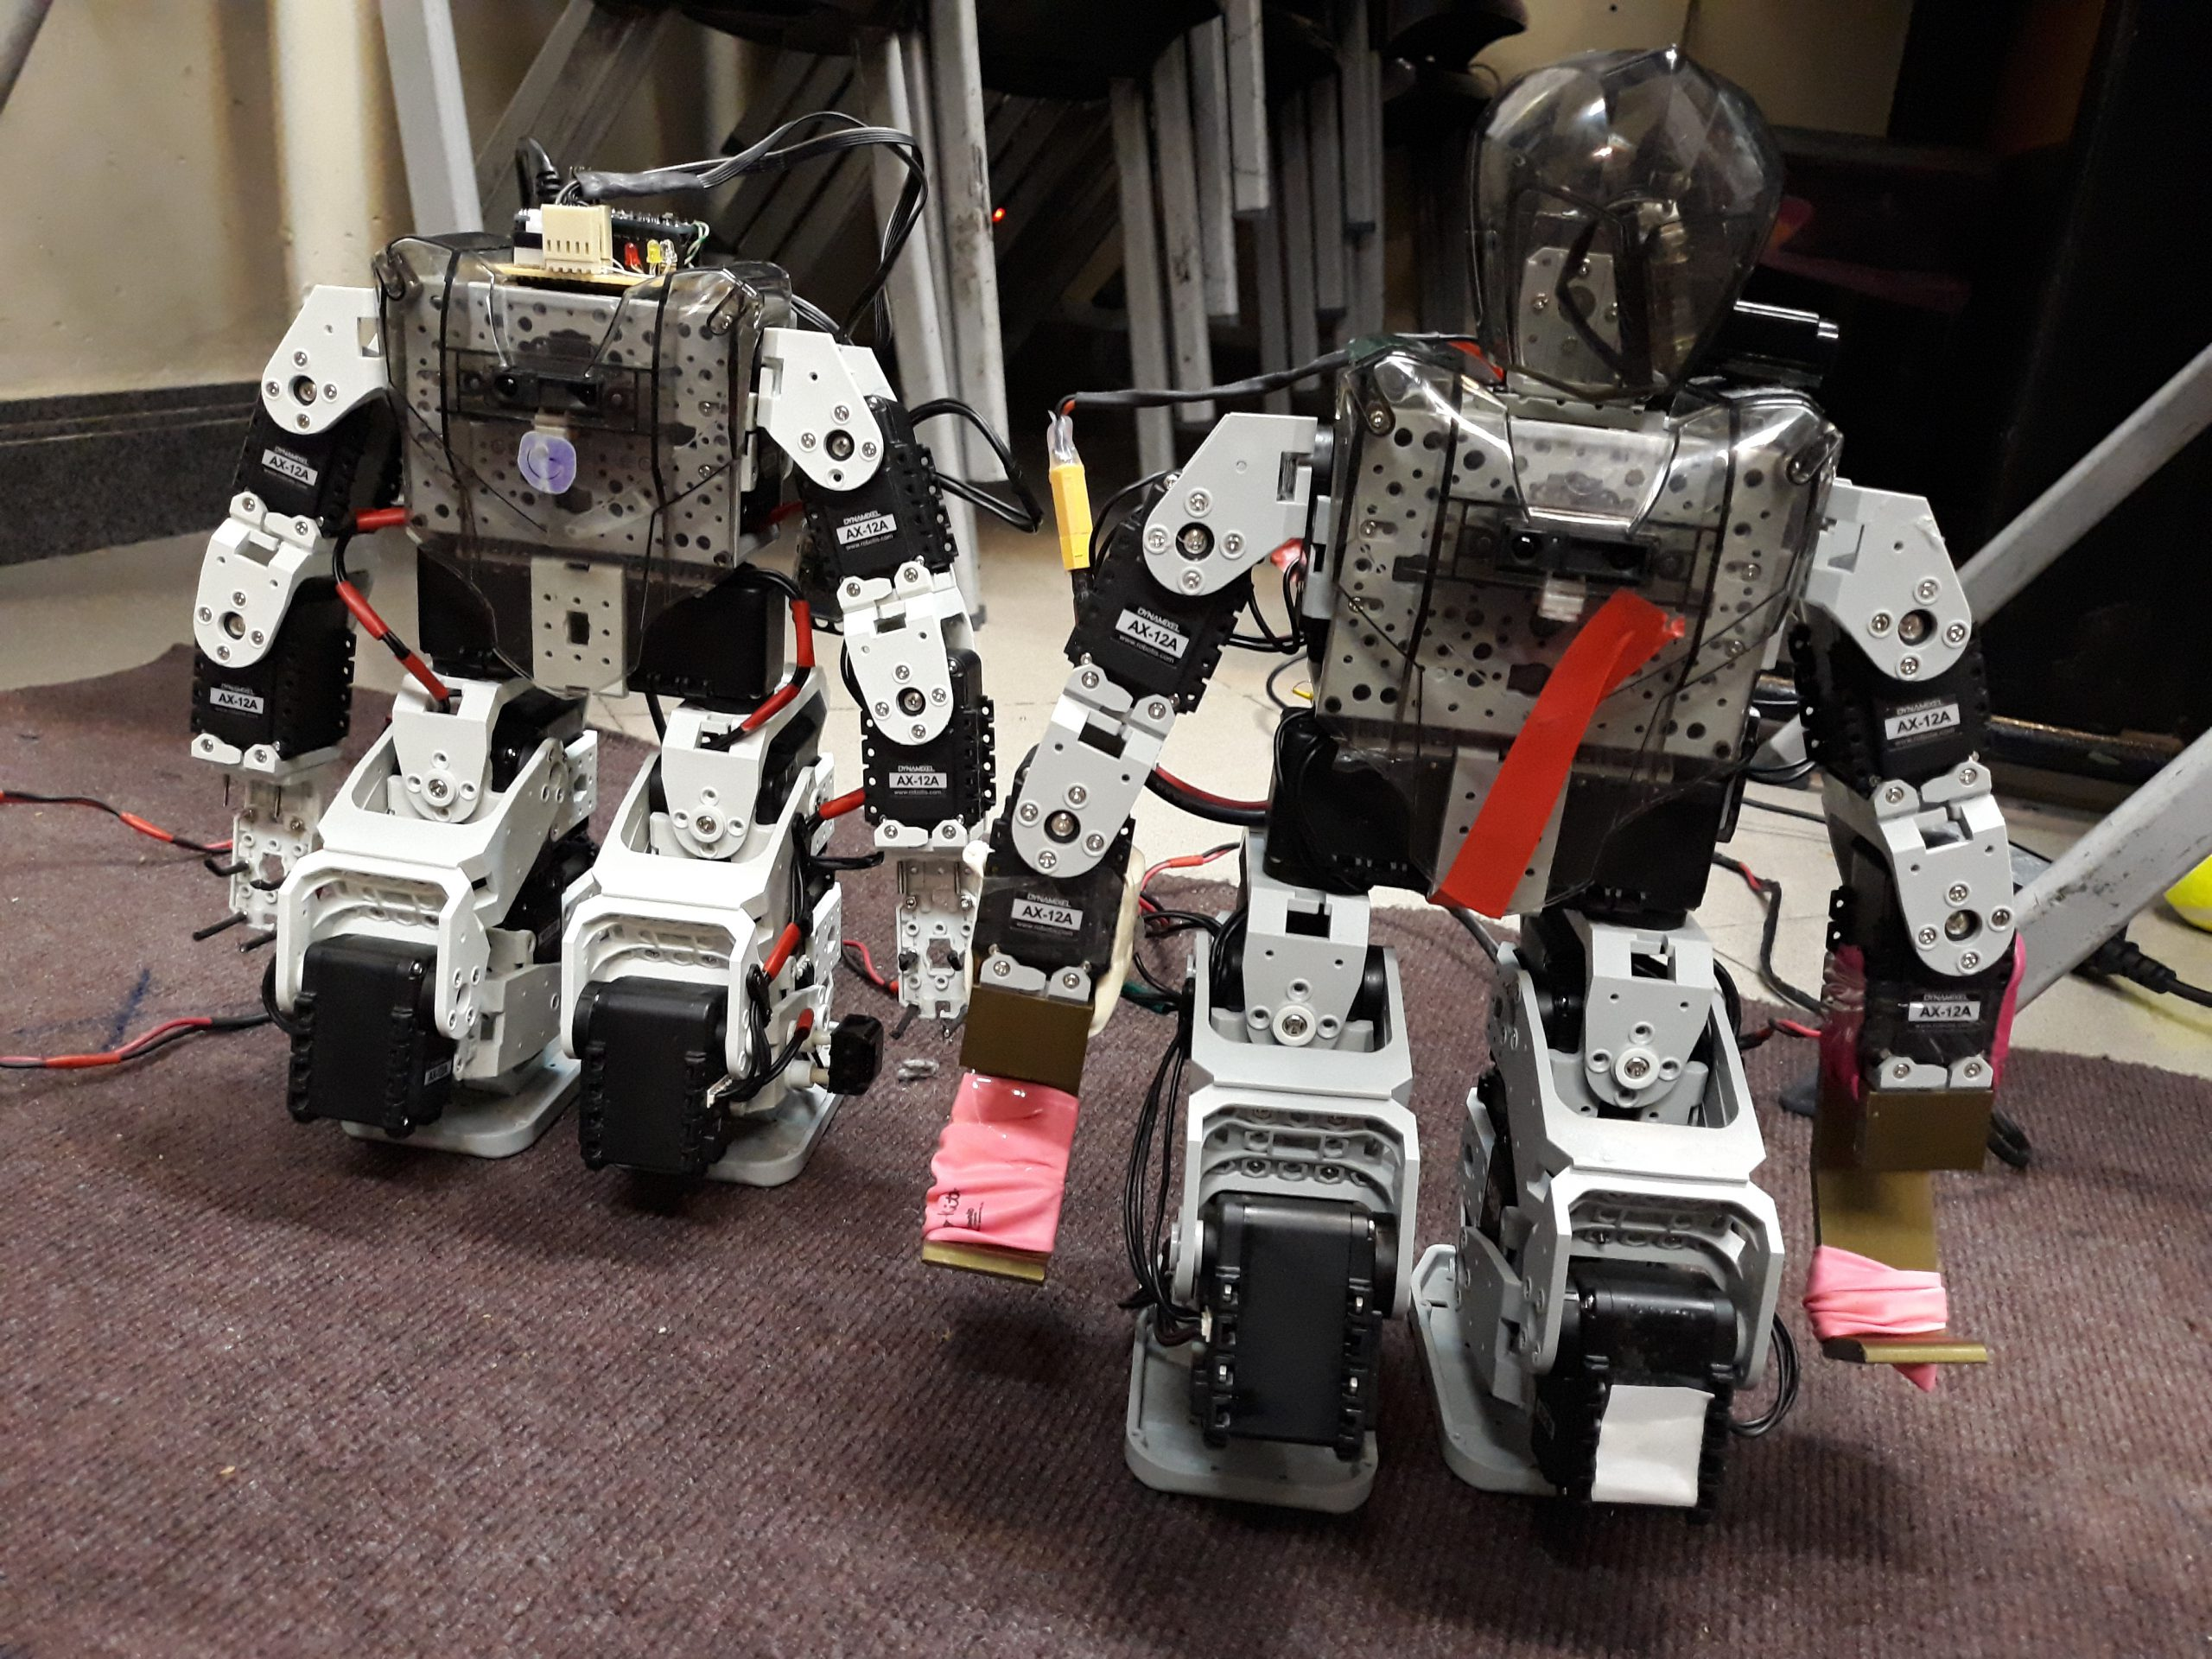 Pishrobot Humanoid Robot Classes